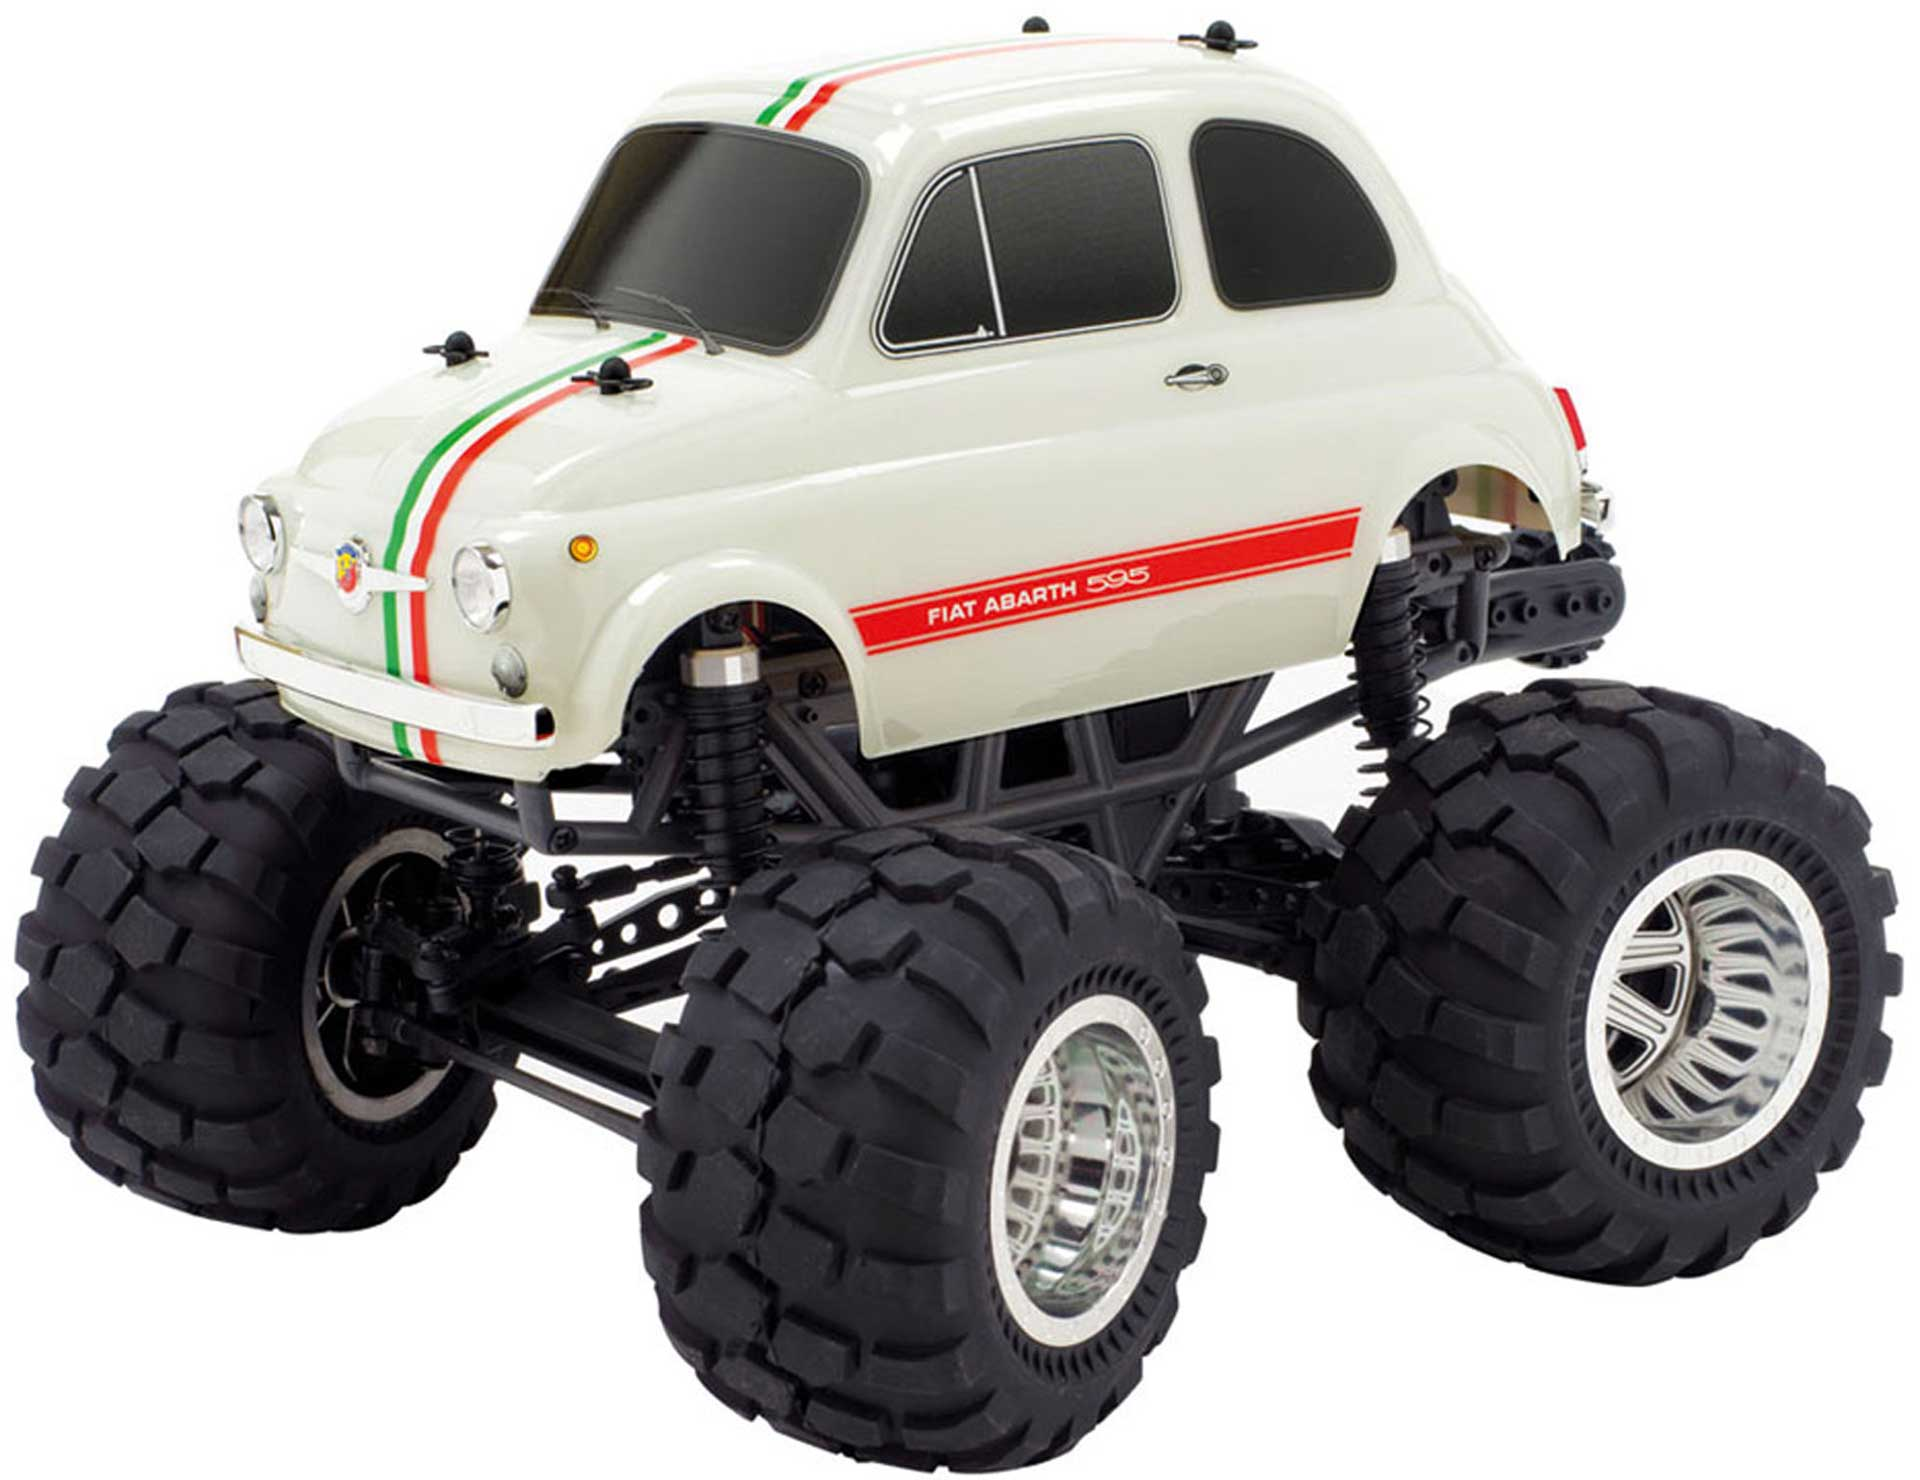 CEN FIAT ABARTH 595 MONSTER TRUCK 2WD 1/12 RTR EP